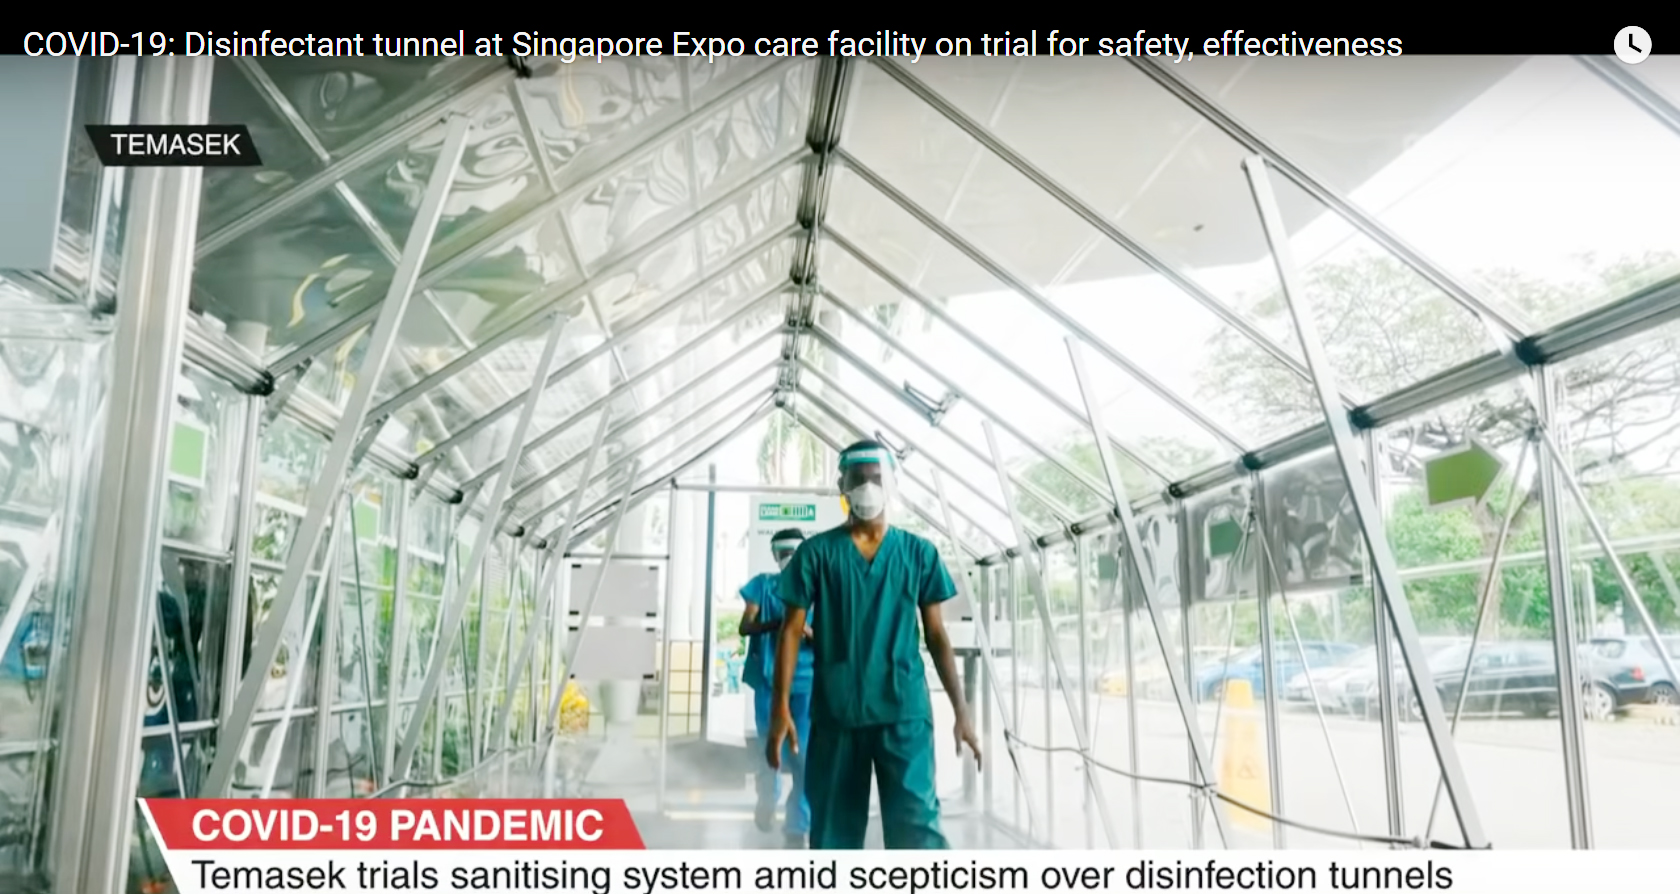 Disinfectant tunnel at Singapore Expo care facility on trial for safety effectiveness copy